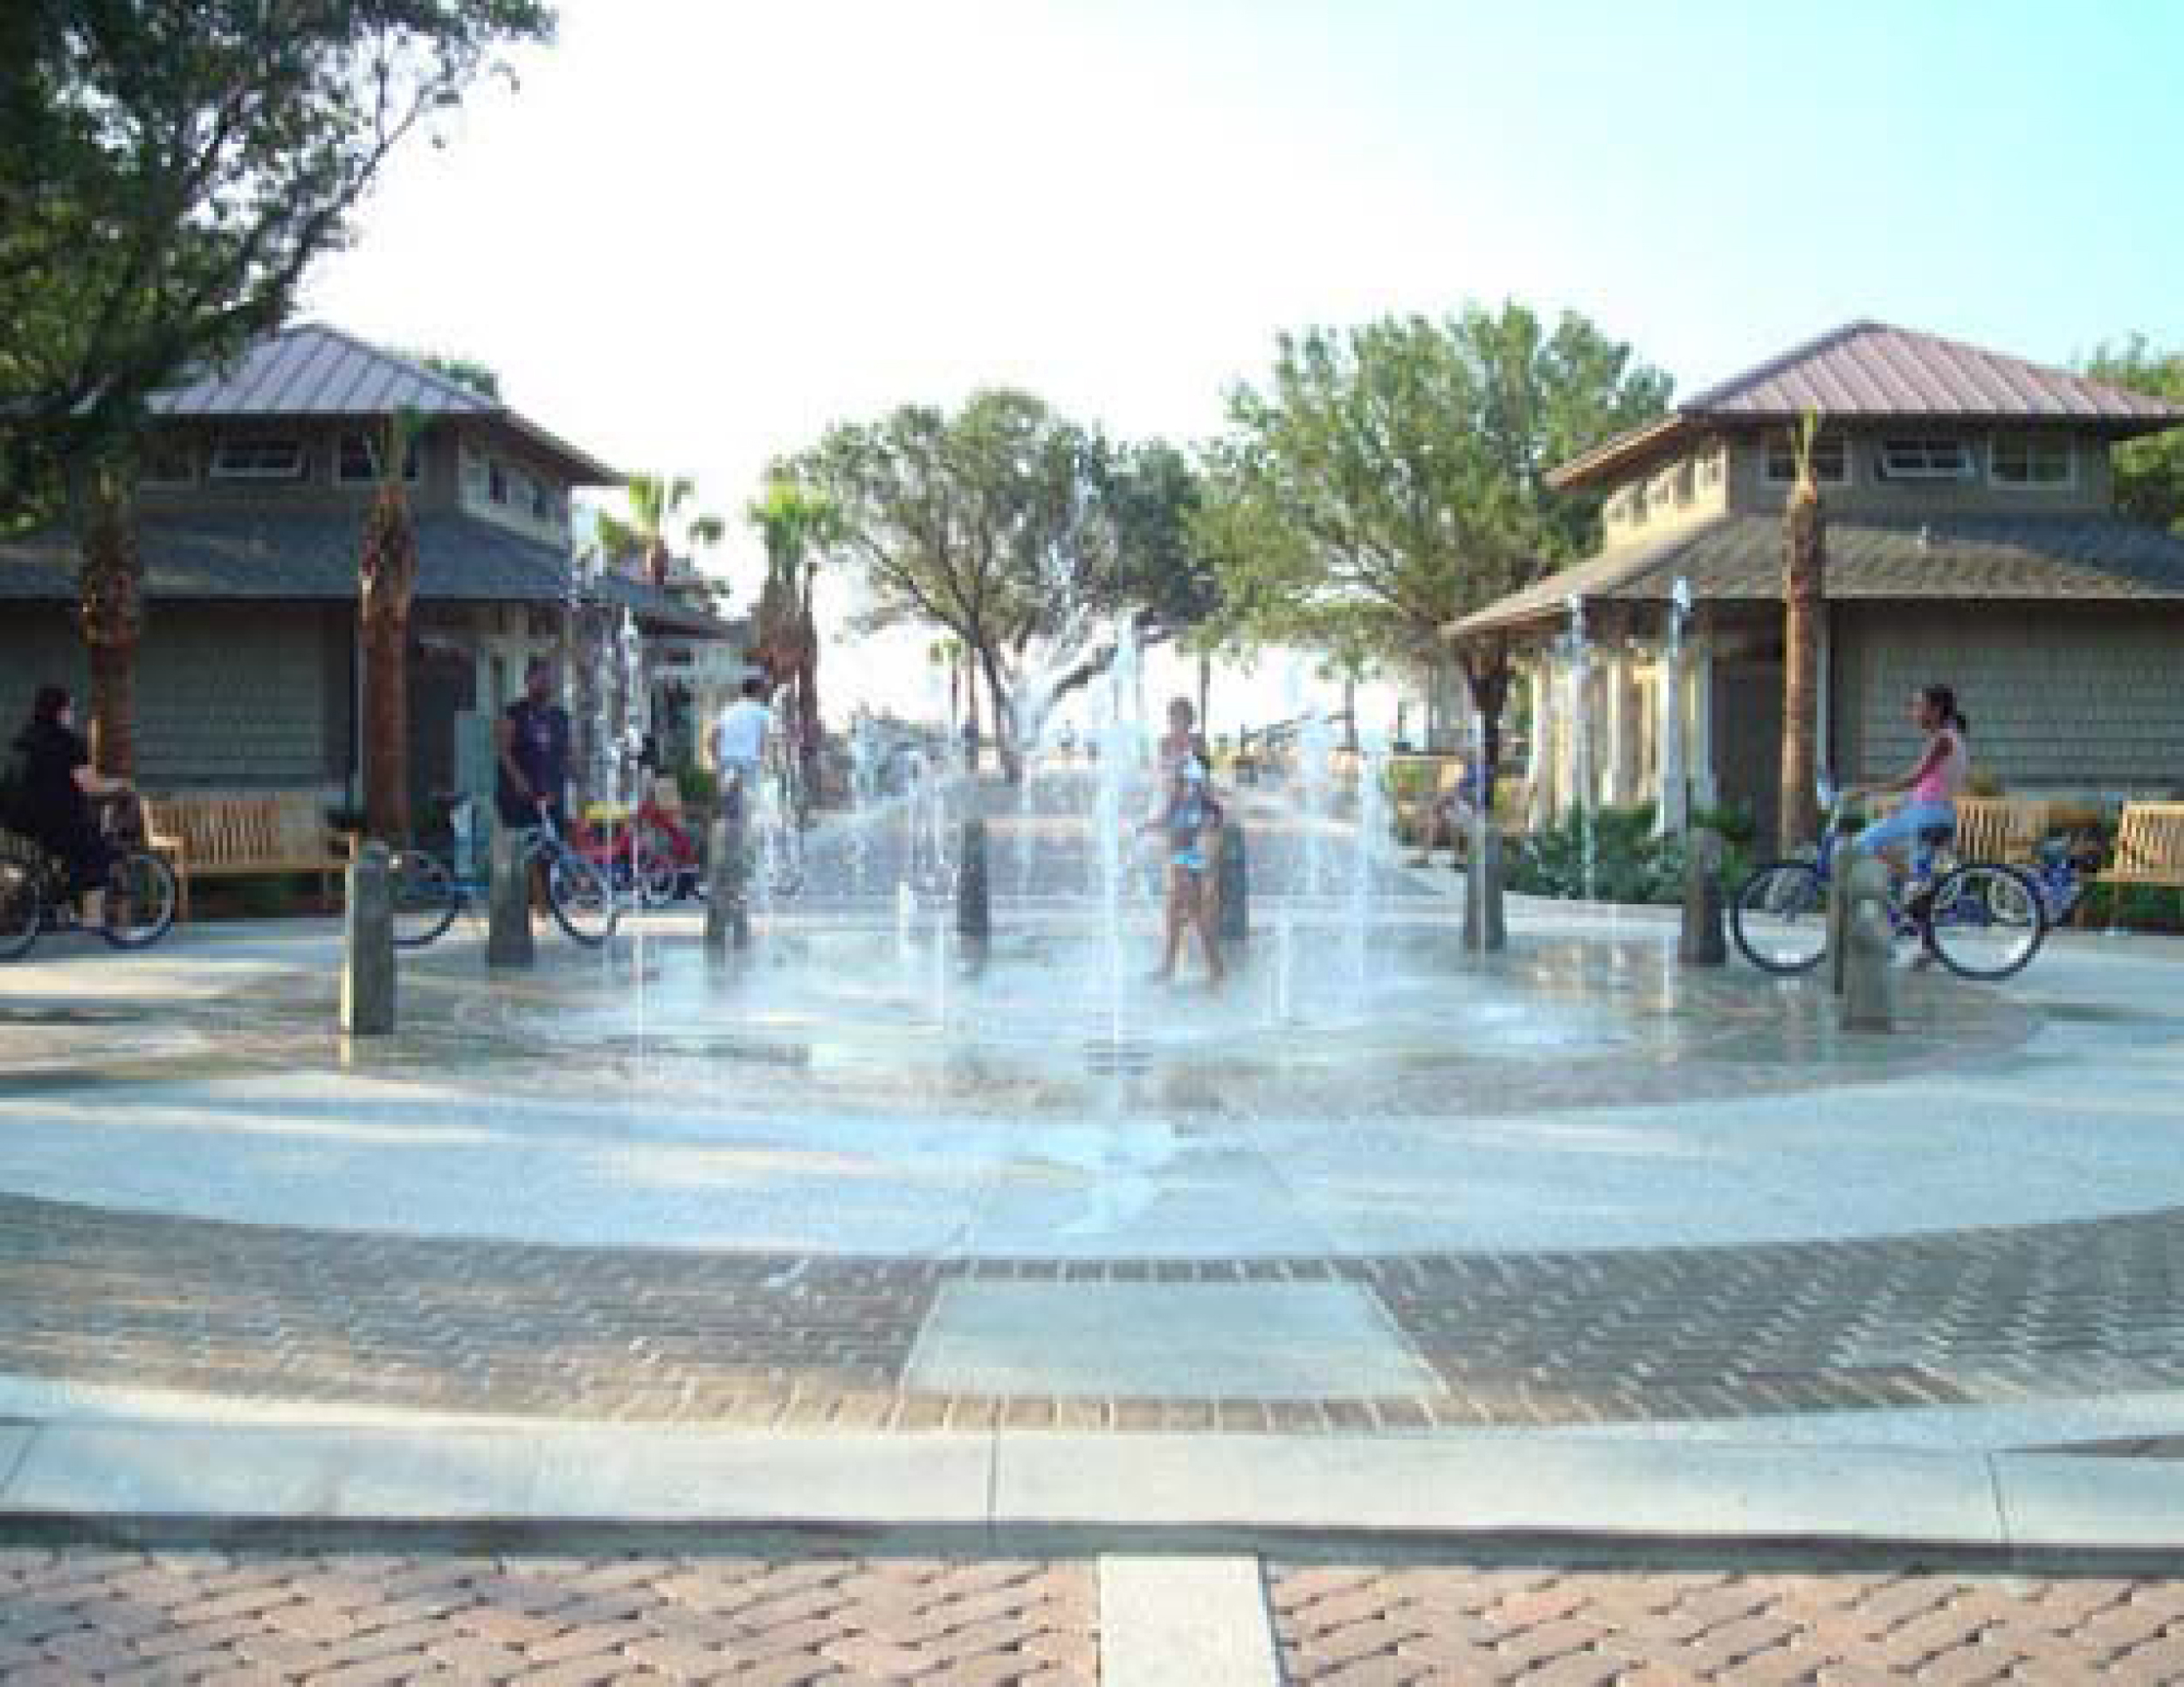 Coligny Beach Park   Architect:  The FWA Group   Participating Memebers:  Barry Taylor, AIA, LEED AP Dale Strecker, AIA